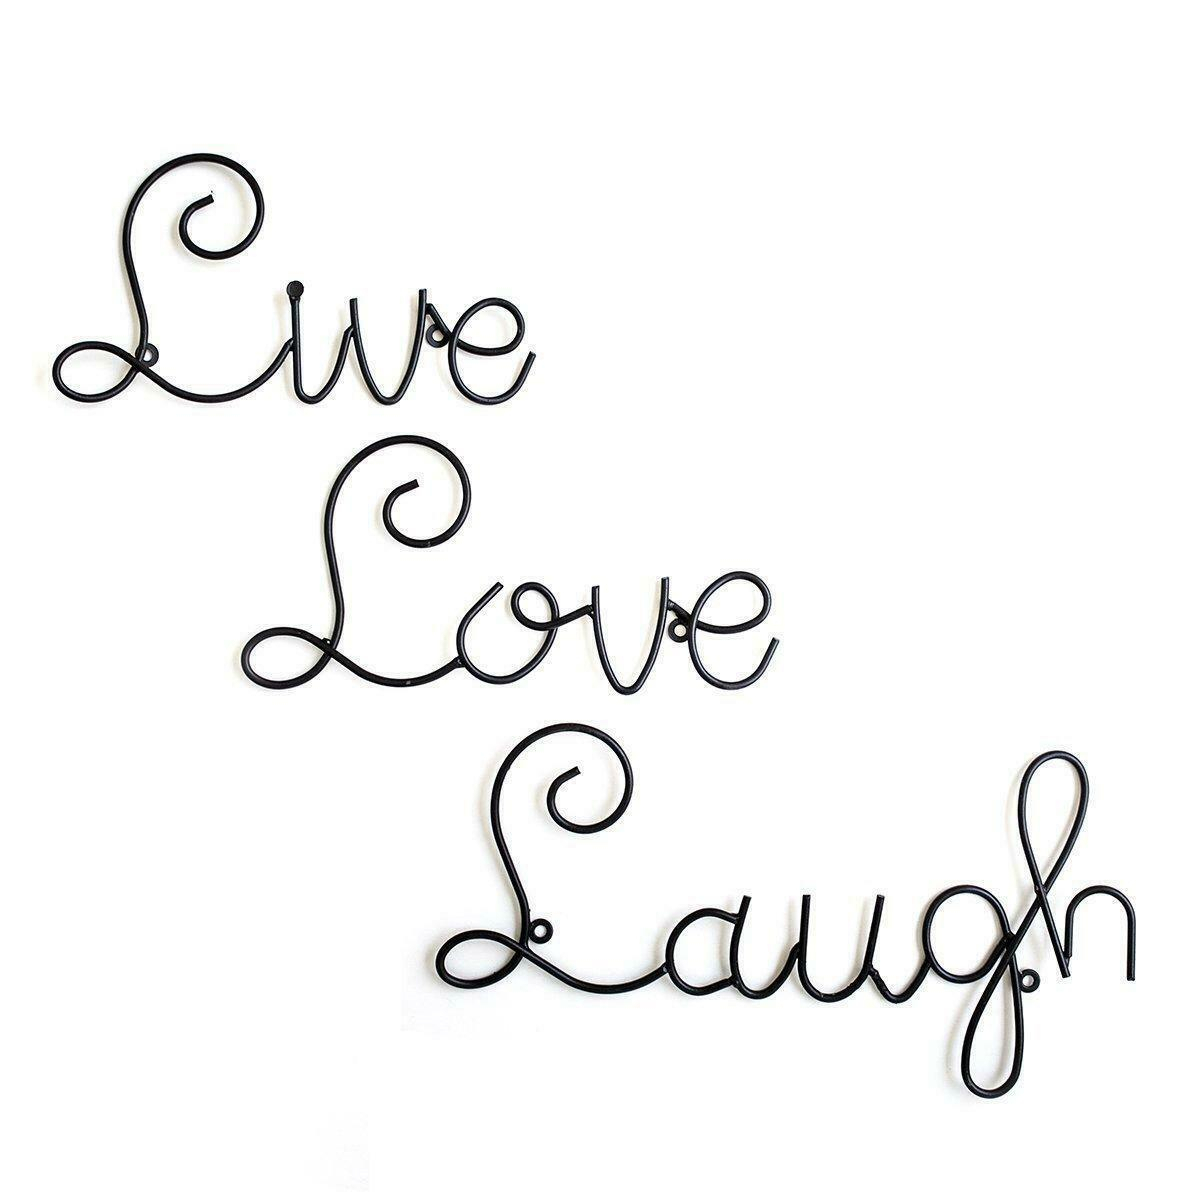 Details About Live Love Laugh Set 3 Metal Wall Decor Art Mount Home Metal  Word Decorations Pertaining To Live, Laugh, Love Antique Copper Wall Decor (Photo 21 of 30)